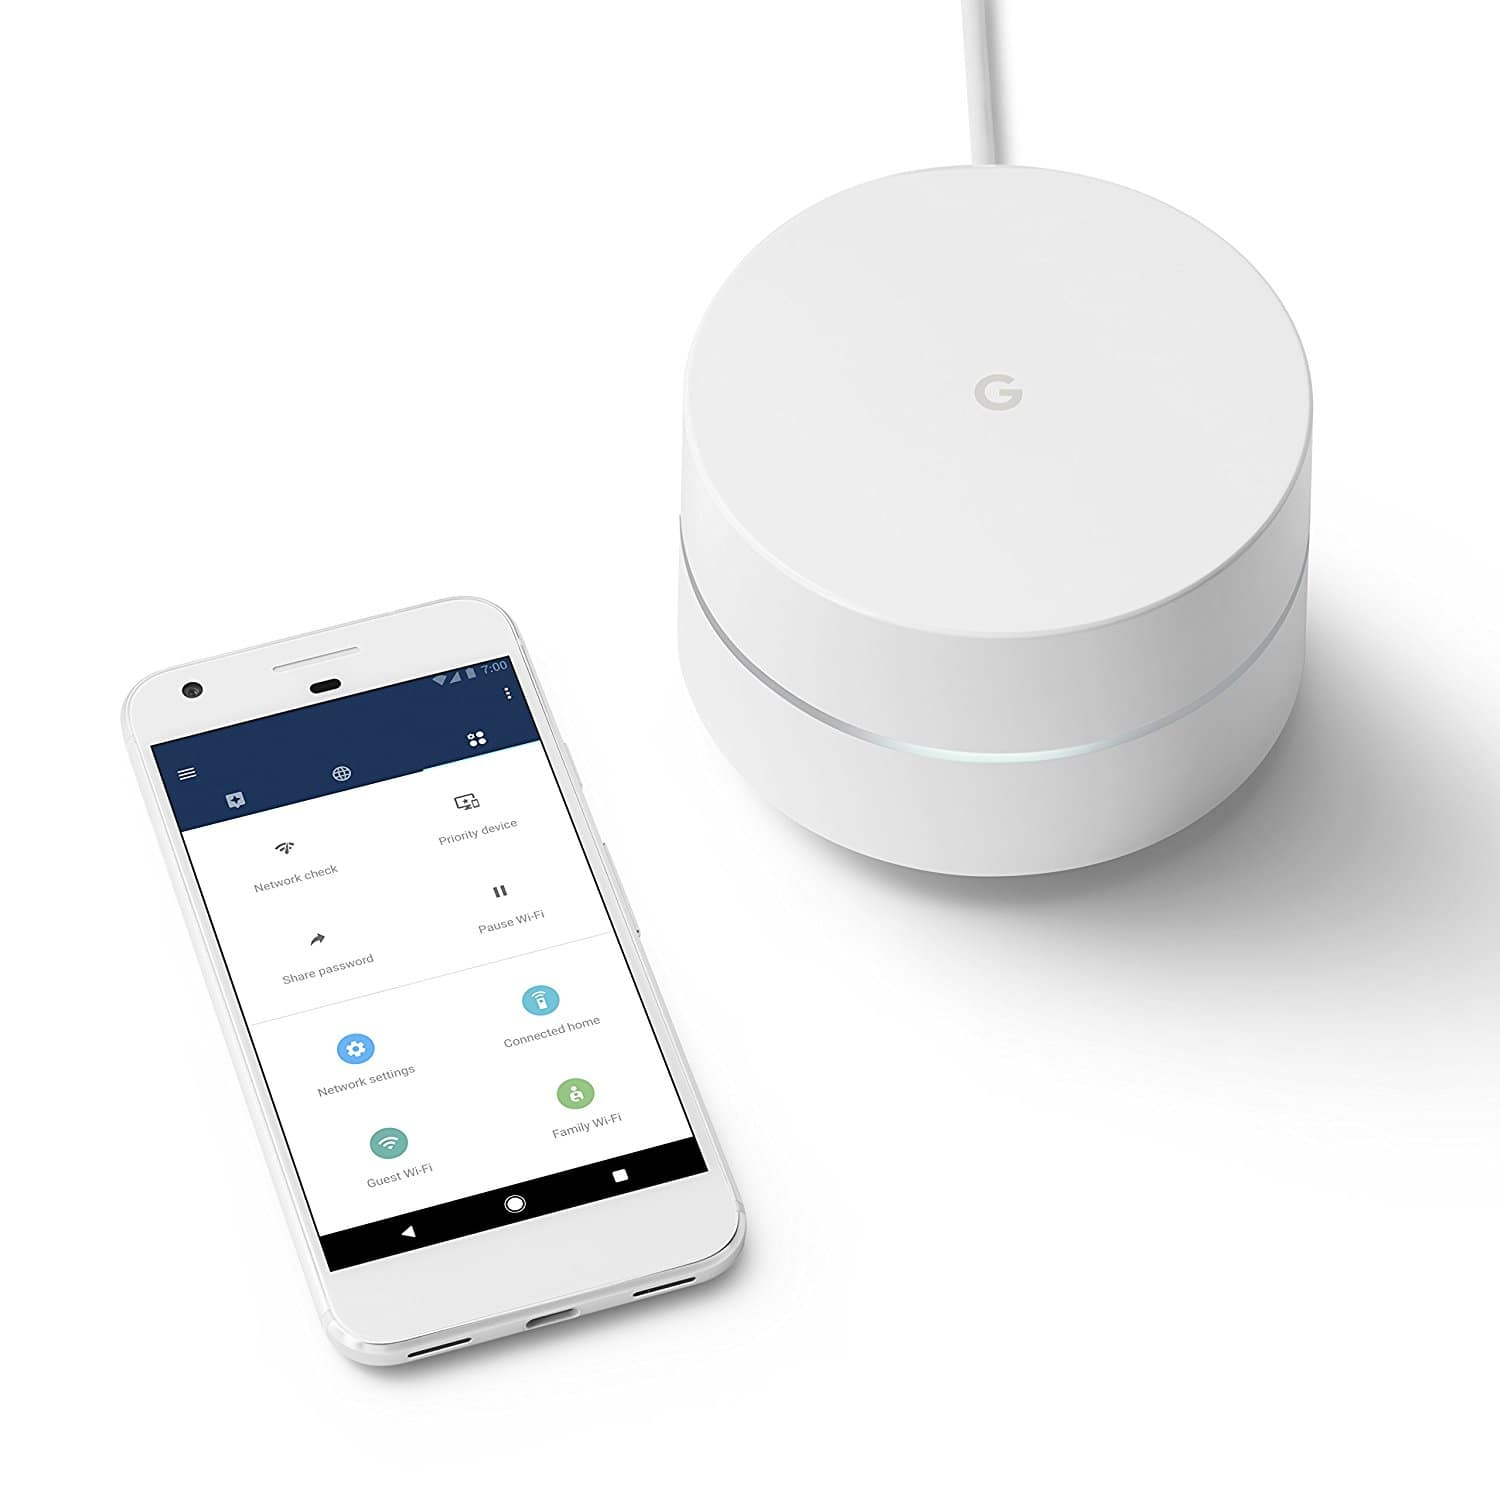 Google WiFi $99 at Amazon